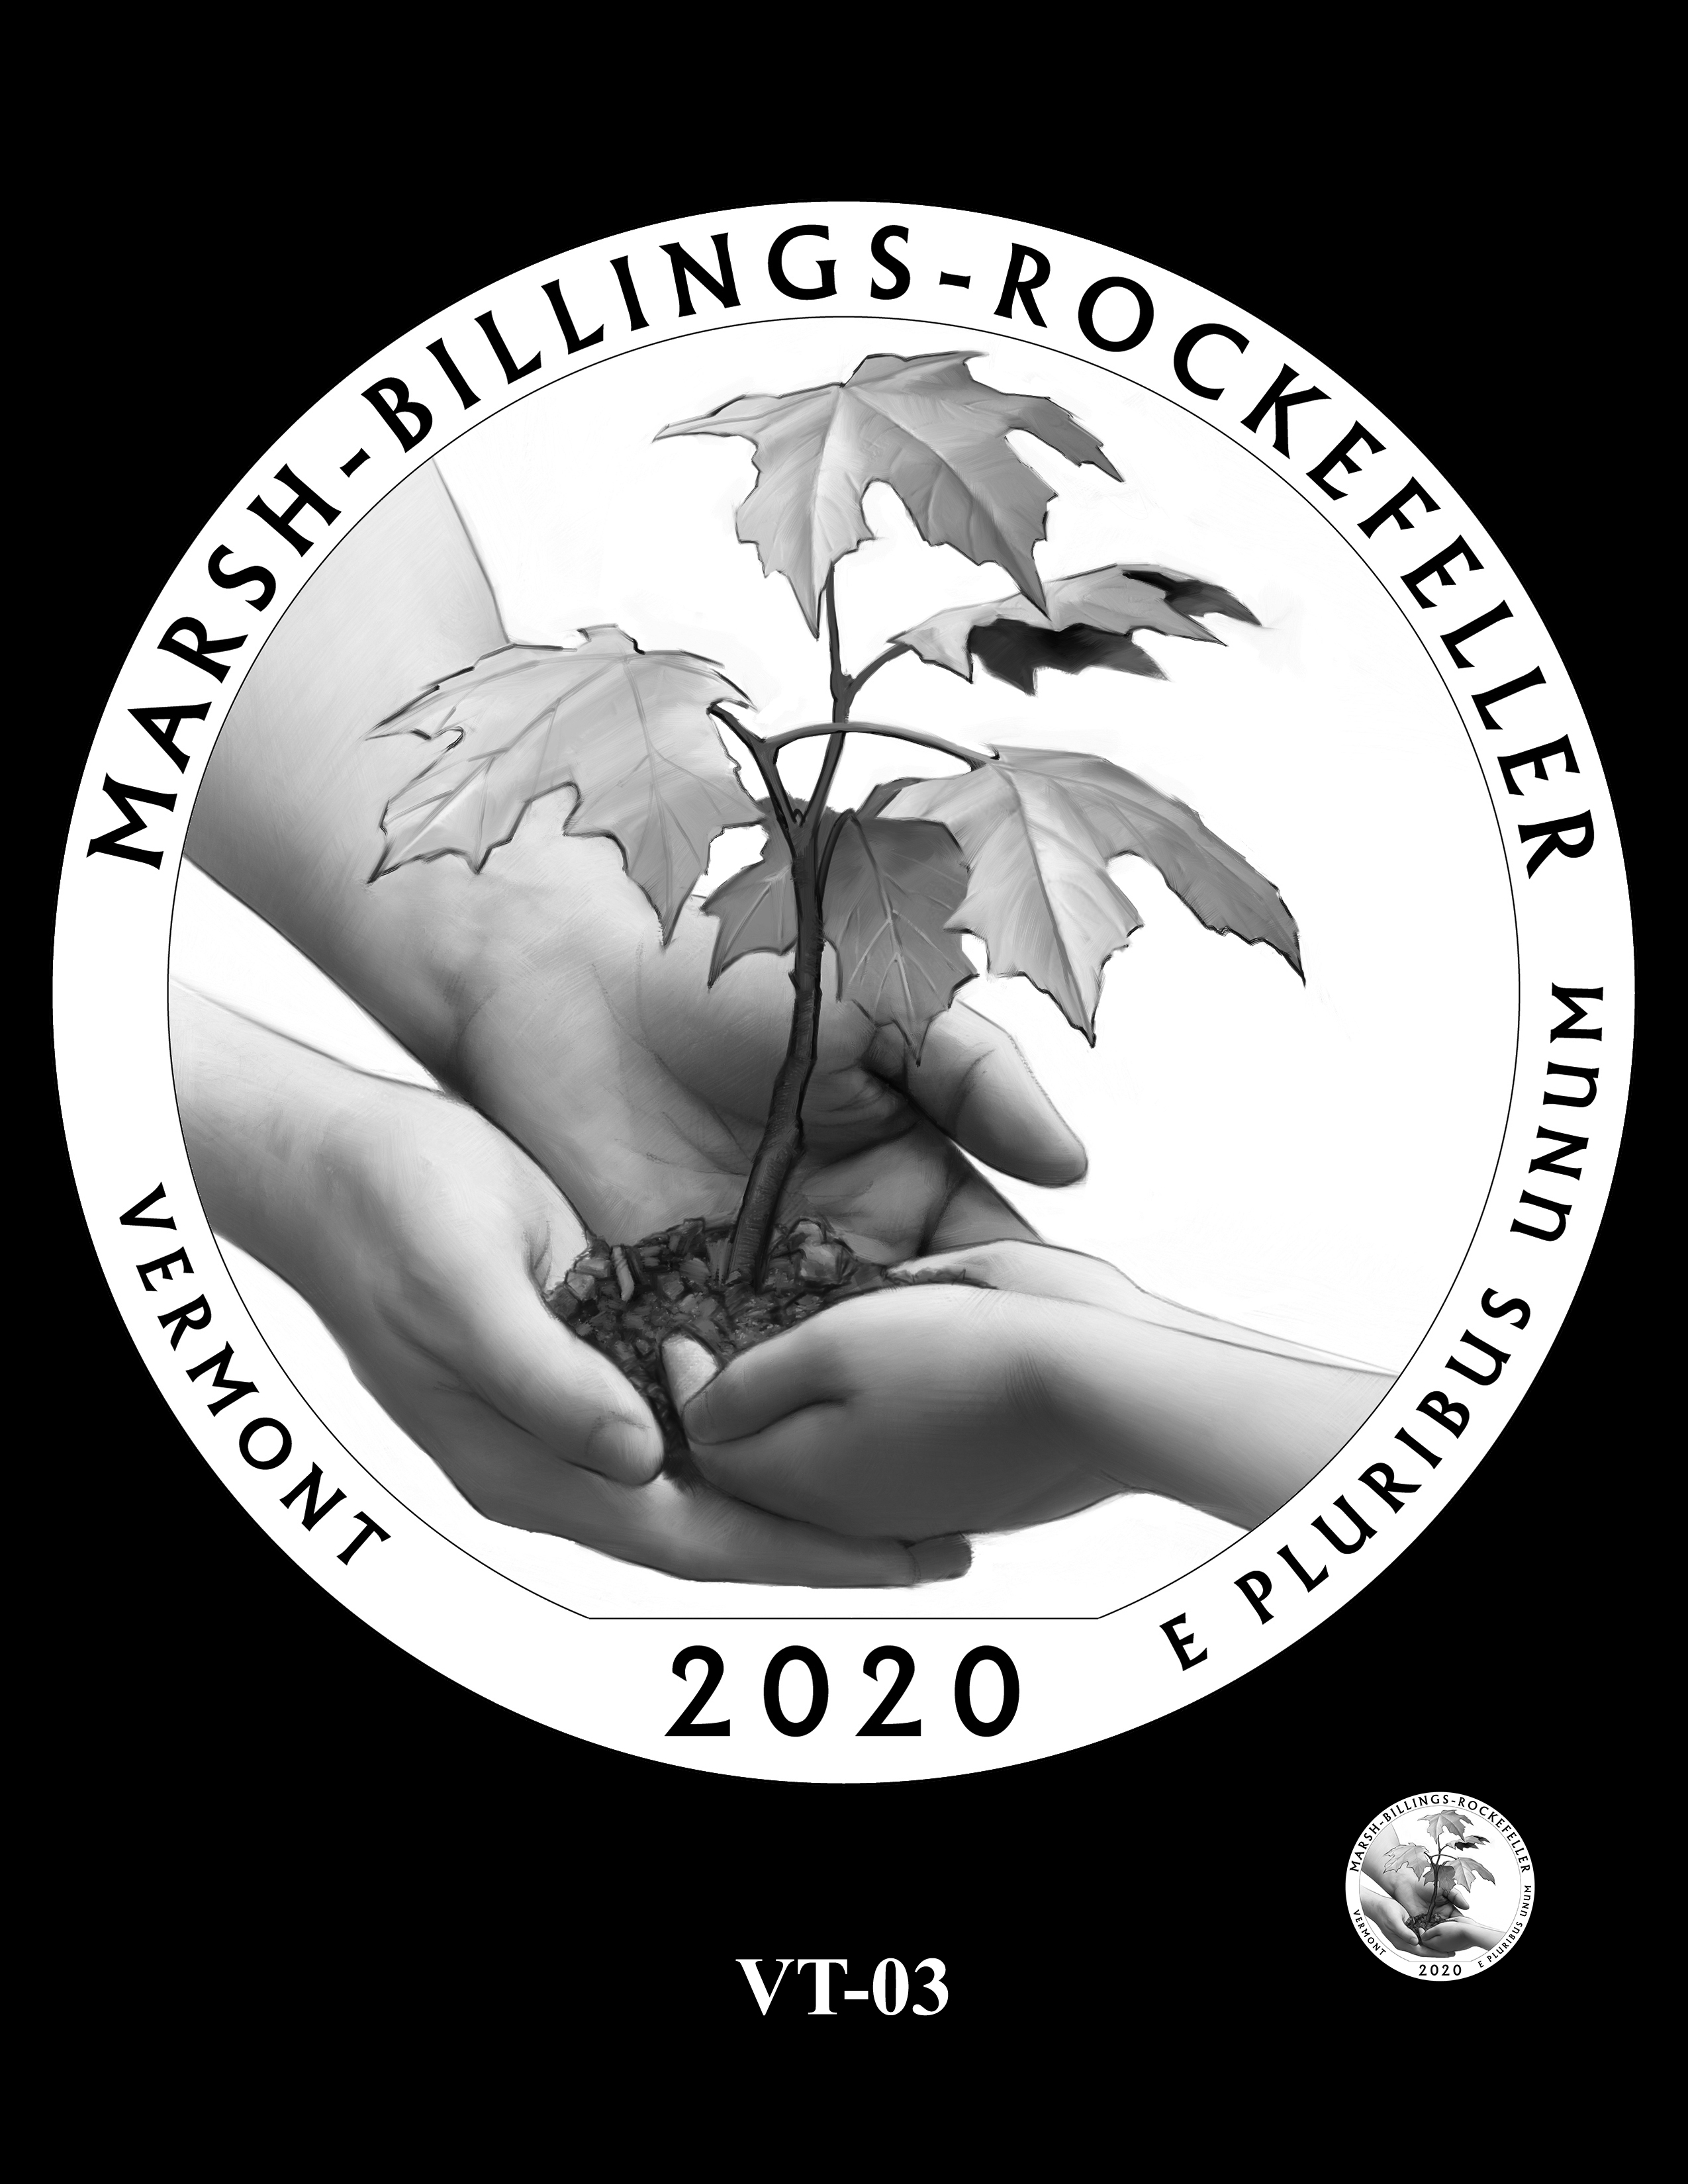 VT-03 -- 2020 America the Beautiful Quarters® Program